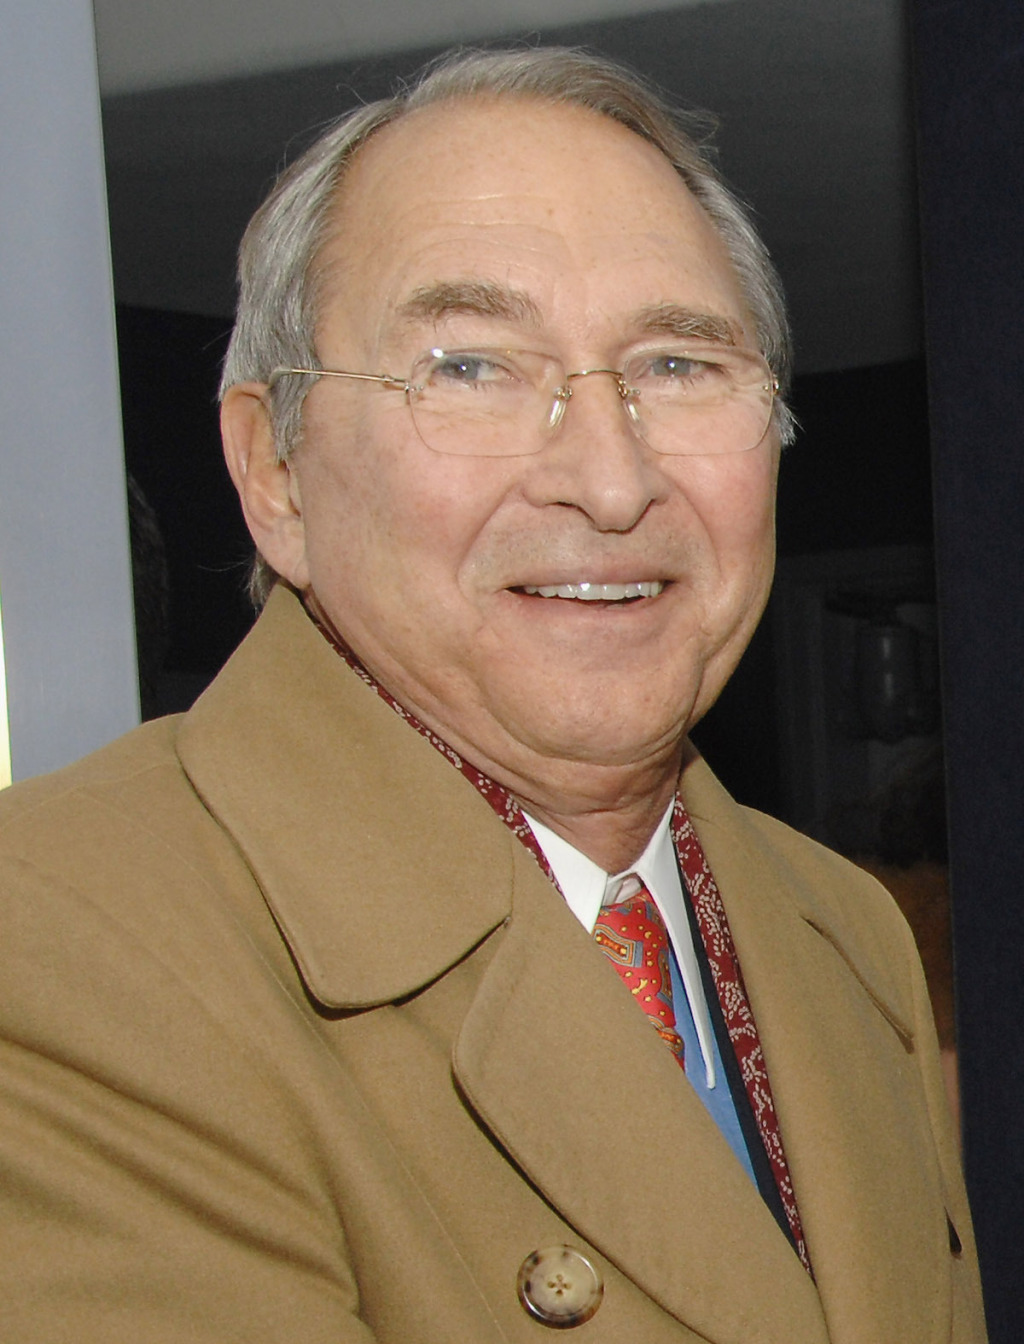 Sheldon Solow, Real Estate Tycoon with Significant Modern Art Collection, Dies at 92